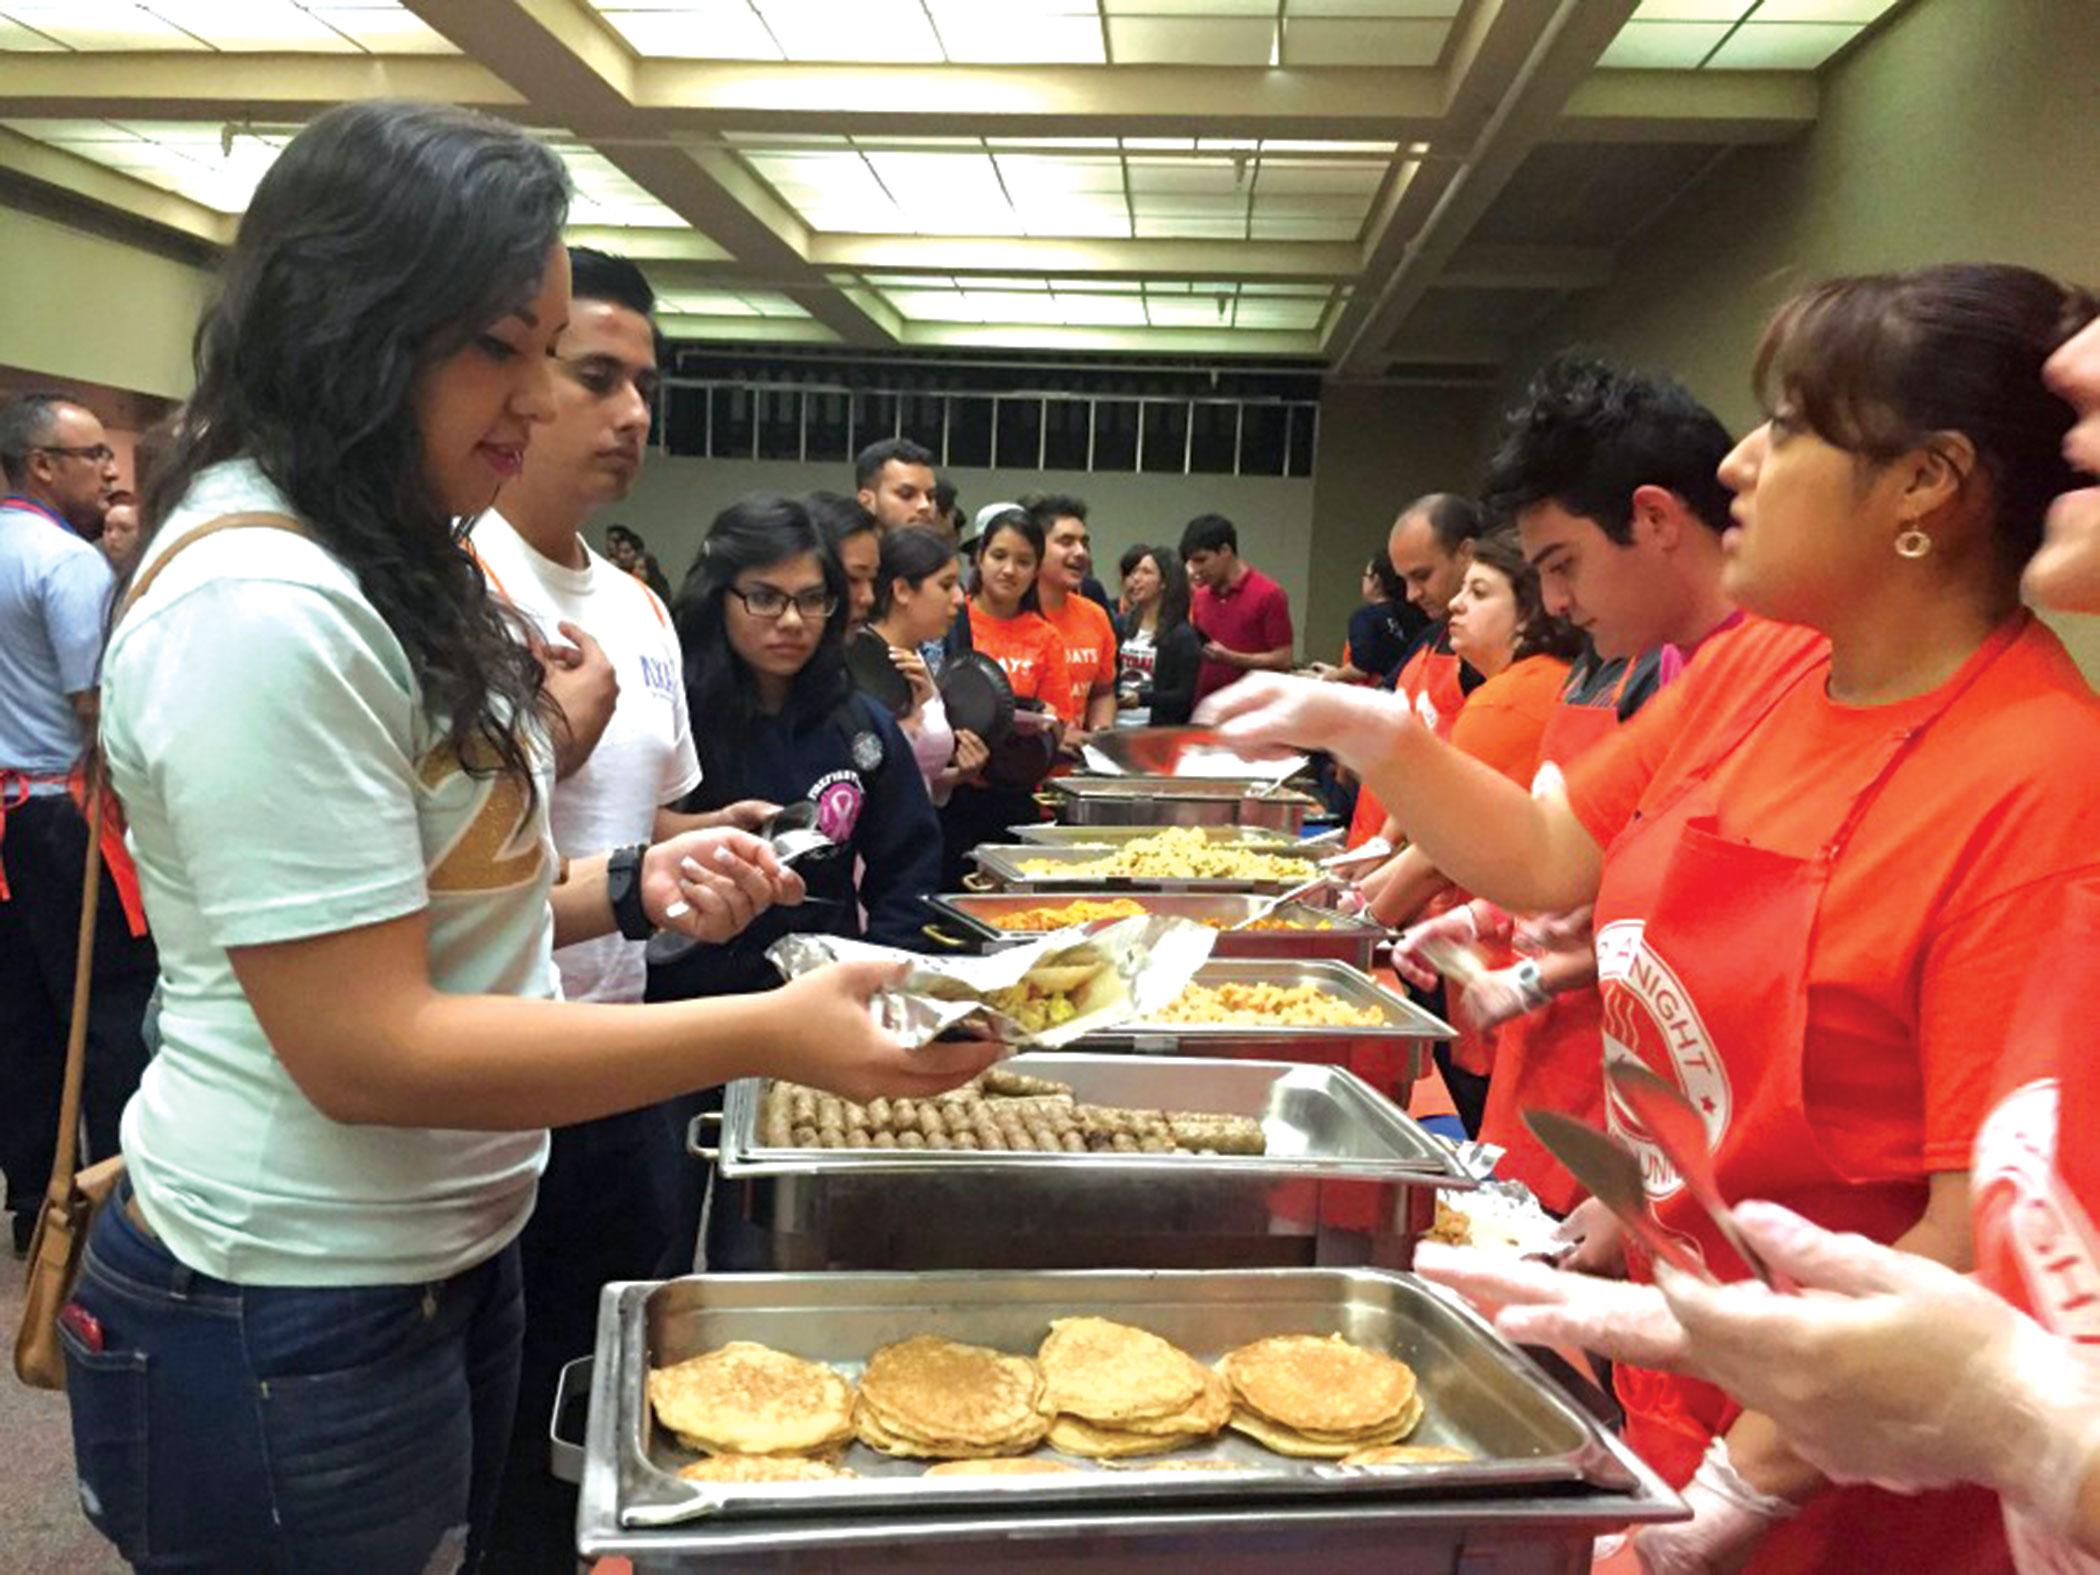 Up All Night will take place at the Union Building East on Tuesday May 10. Around 60 to 70 volunteers are preparing to hand out midnight breakfast.